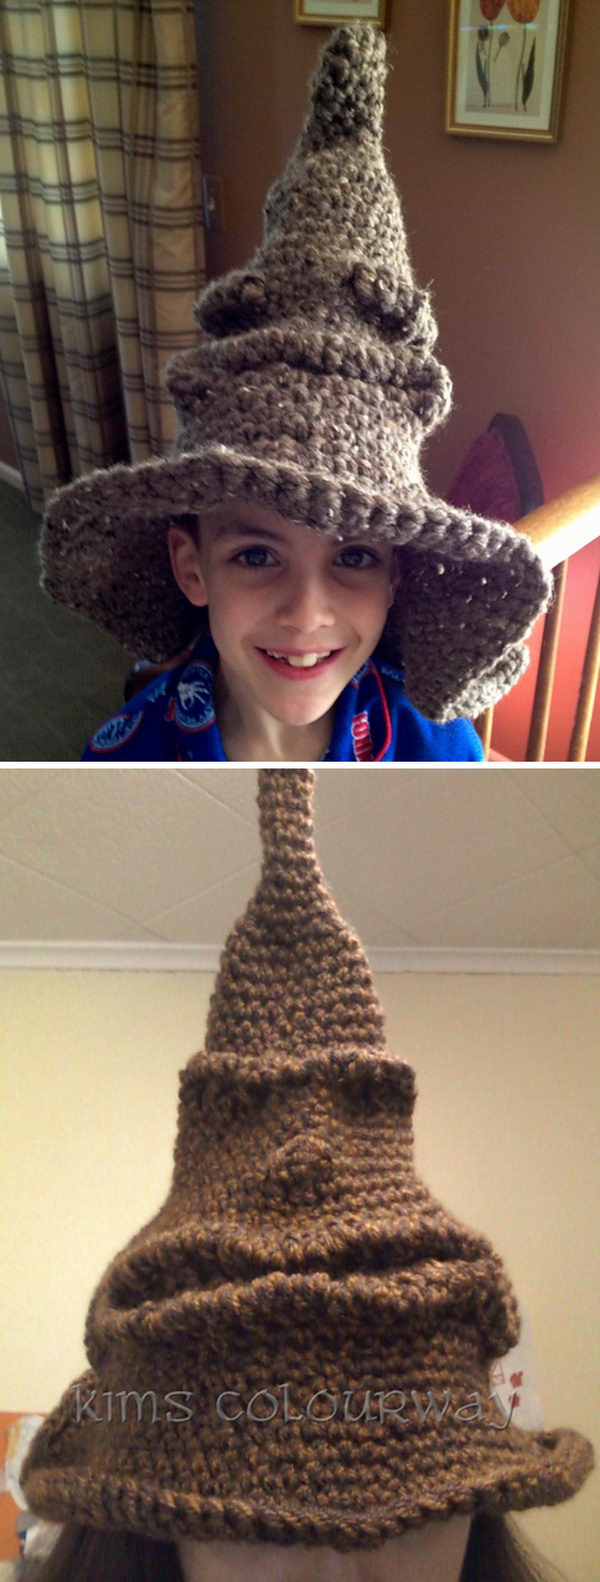 Crochet Harry Potter Sorting Hat.